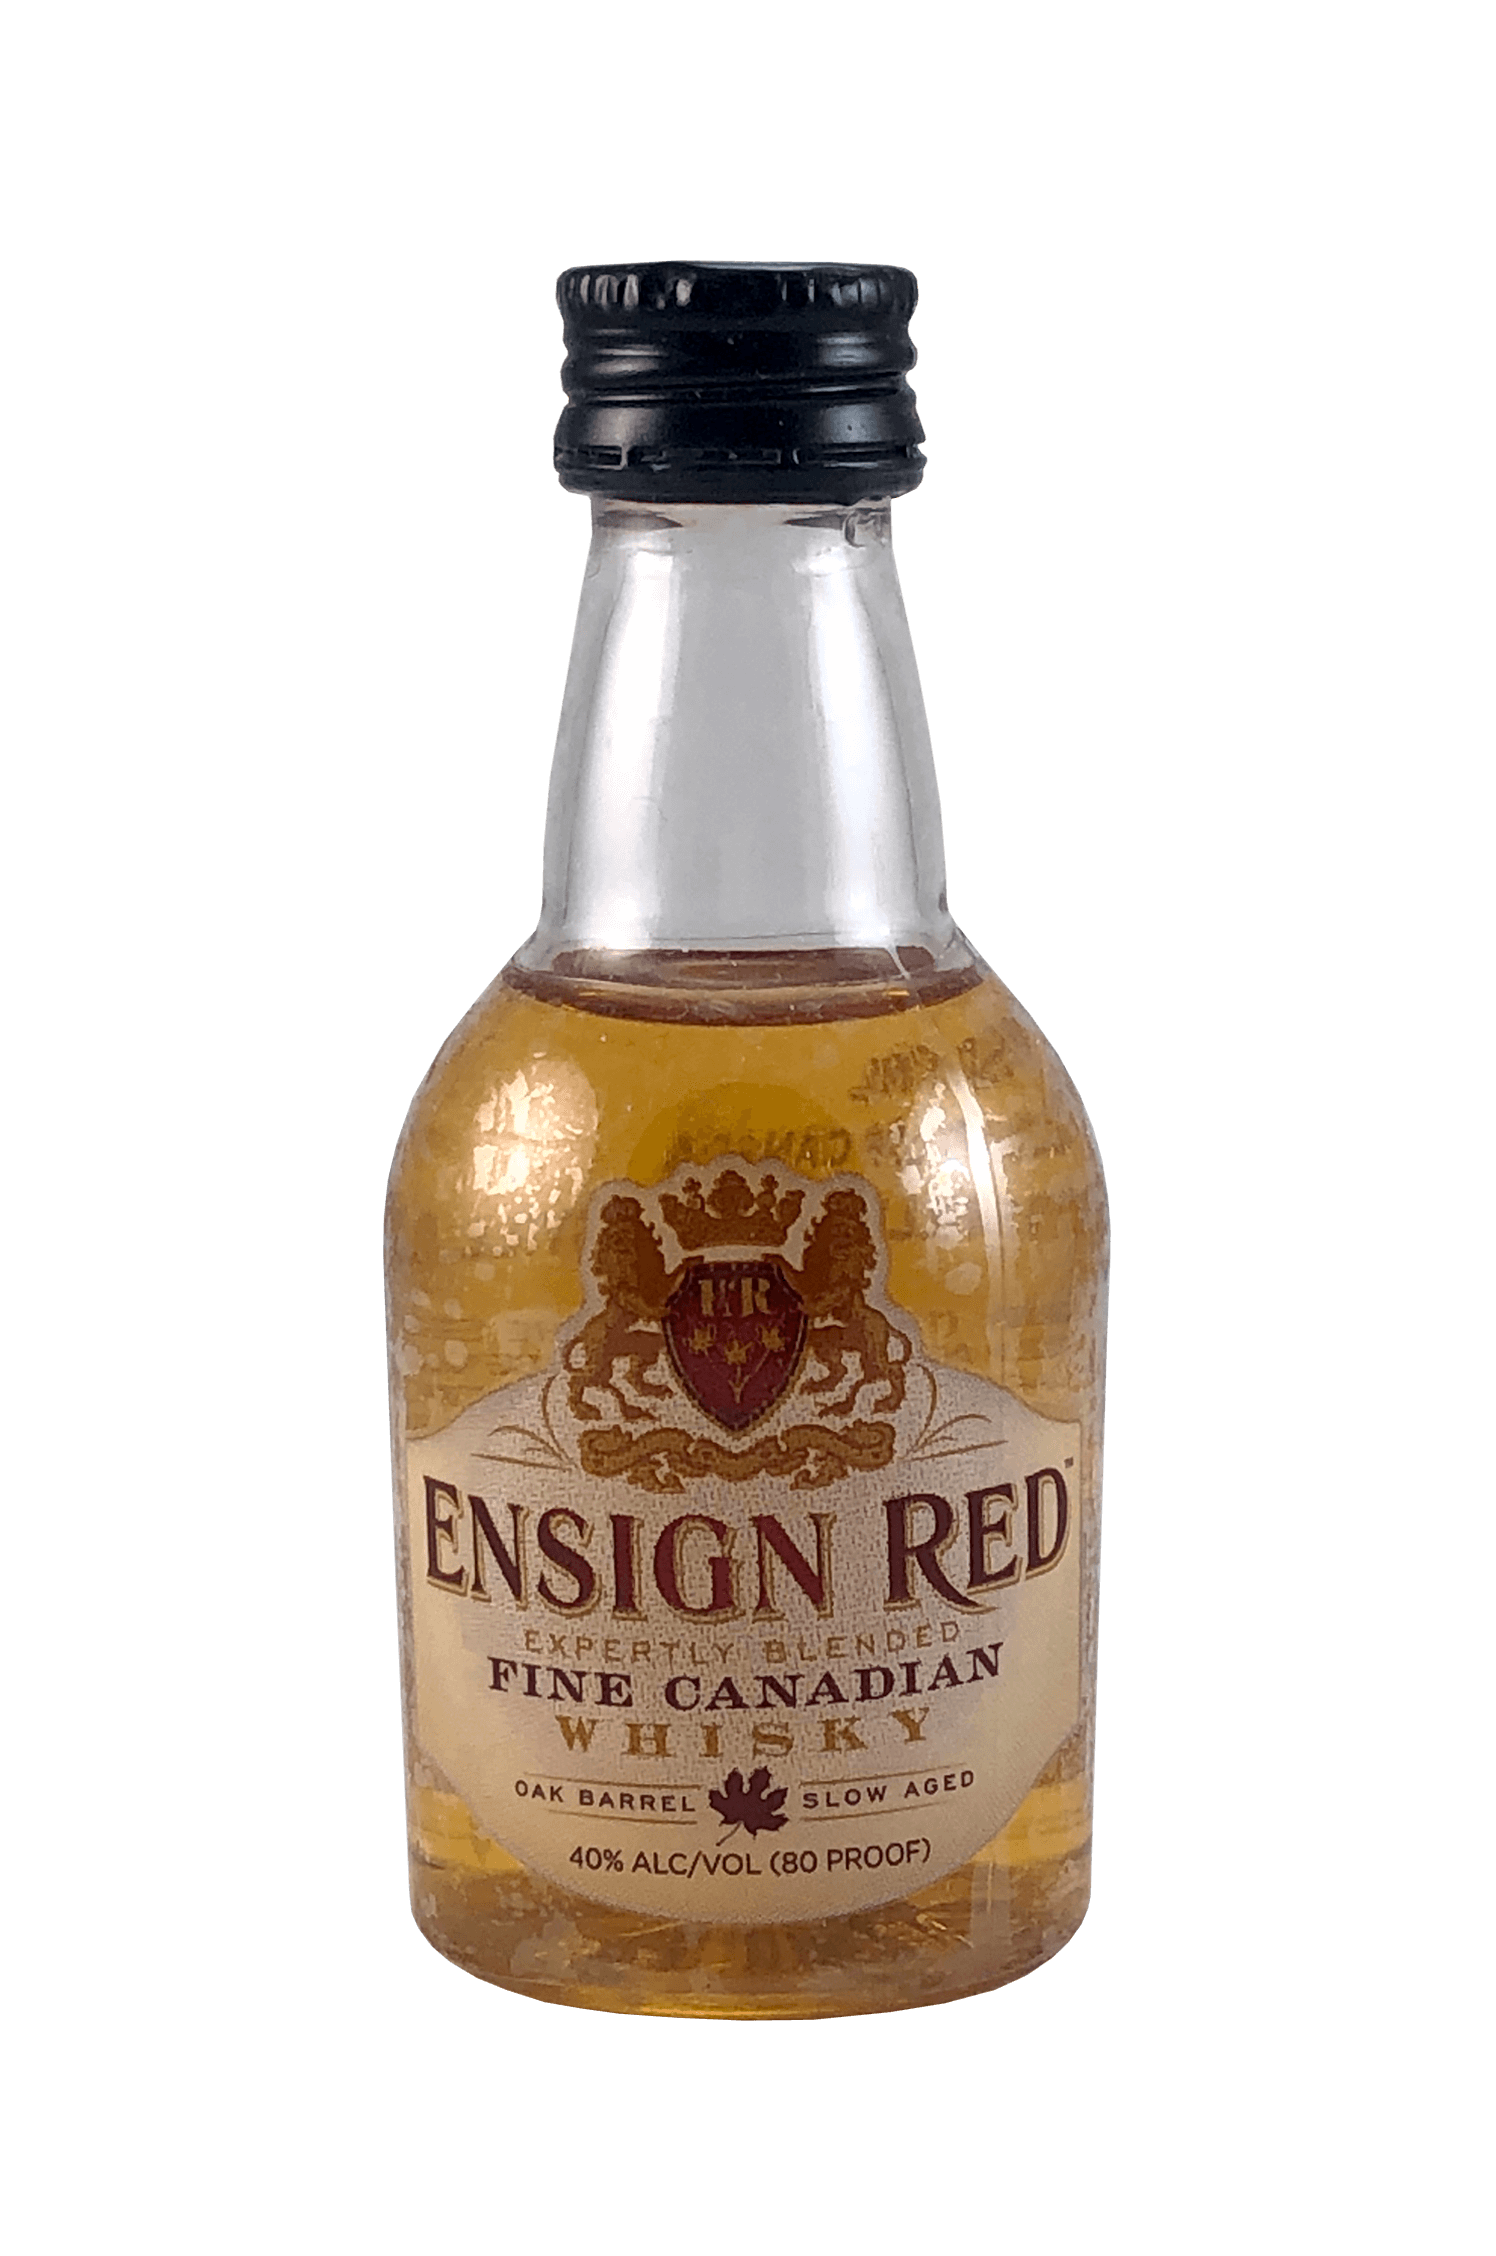 Ensign Red Fine Canadian Whisky